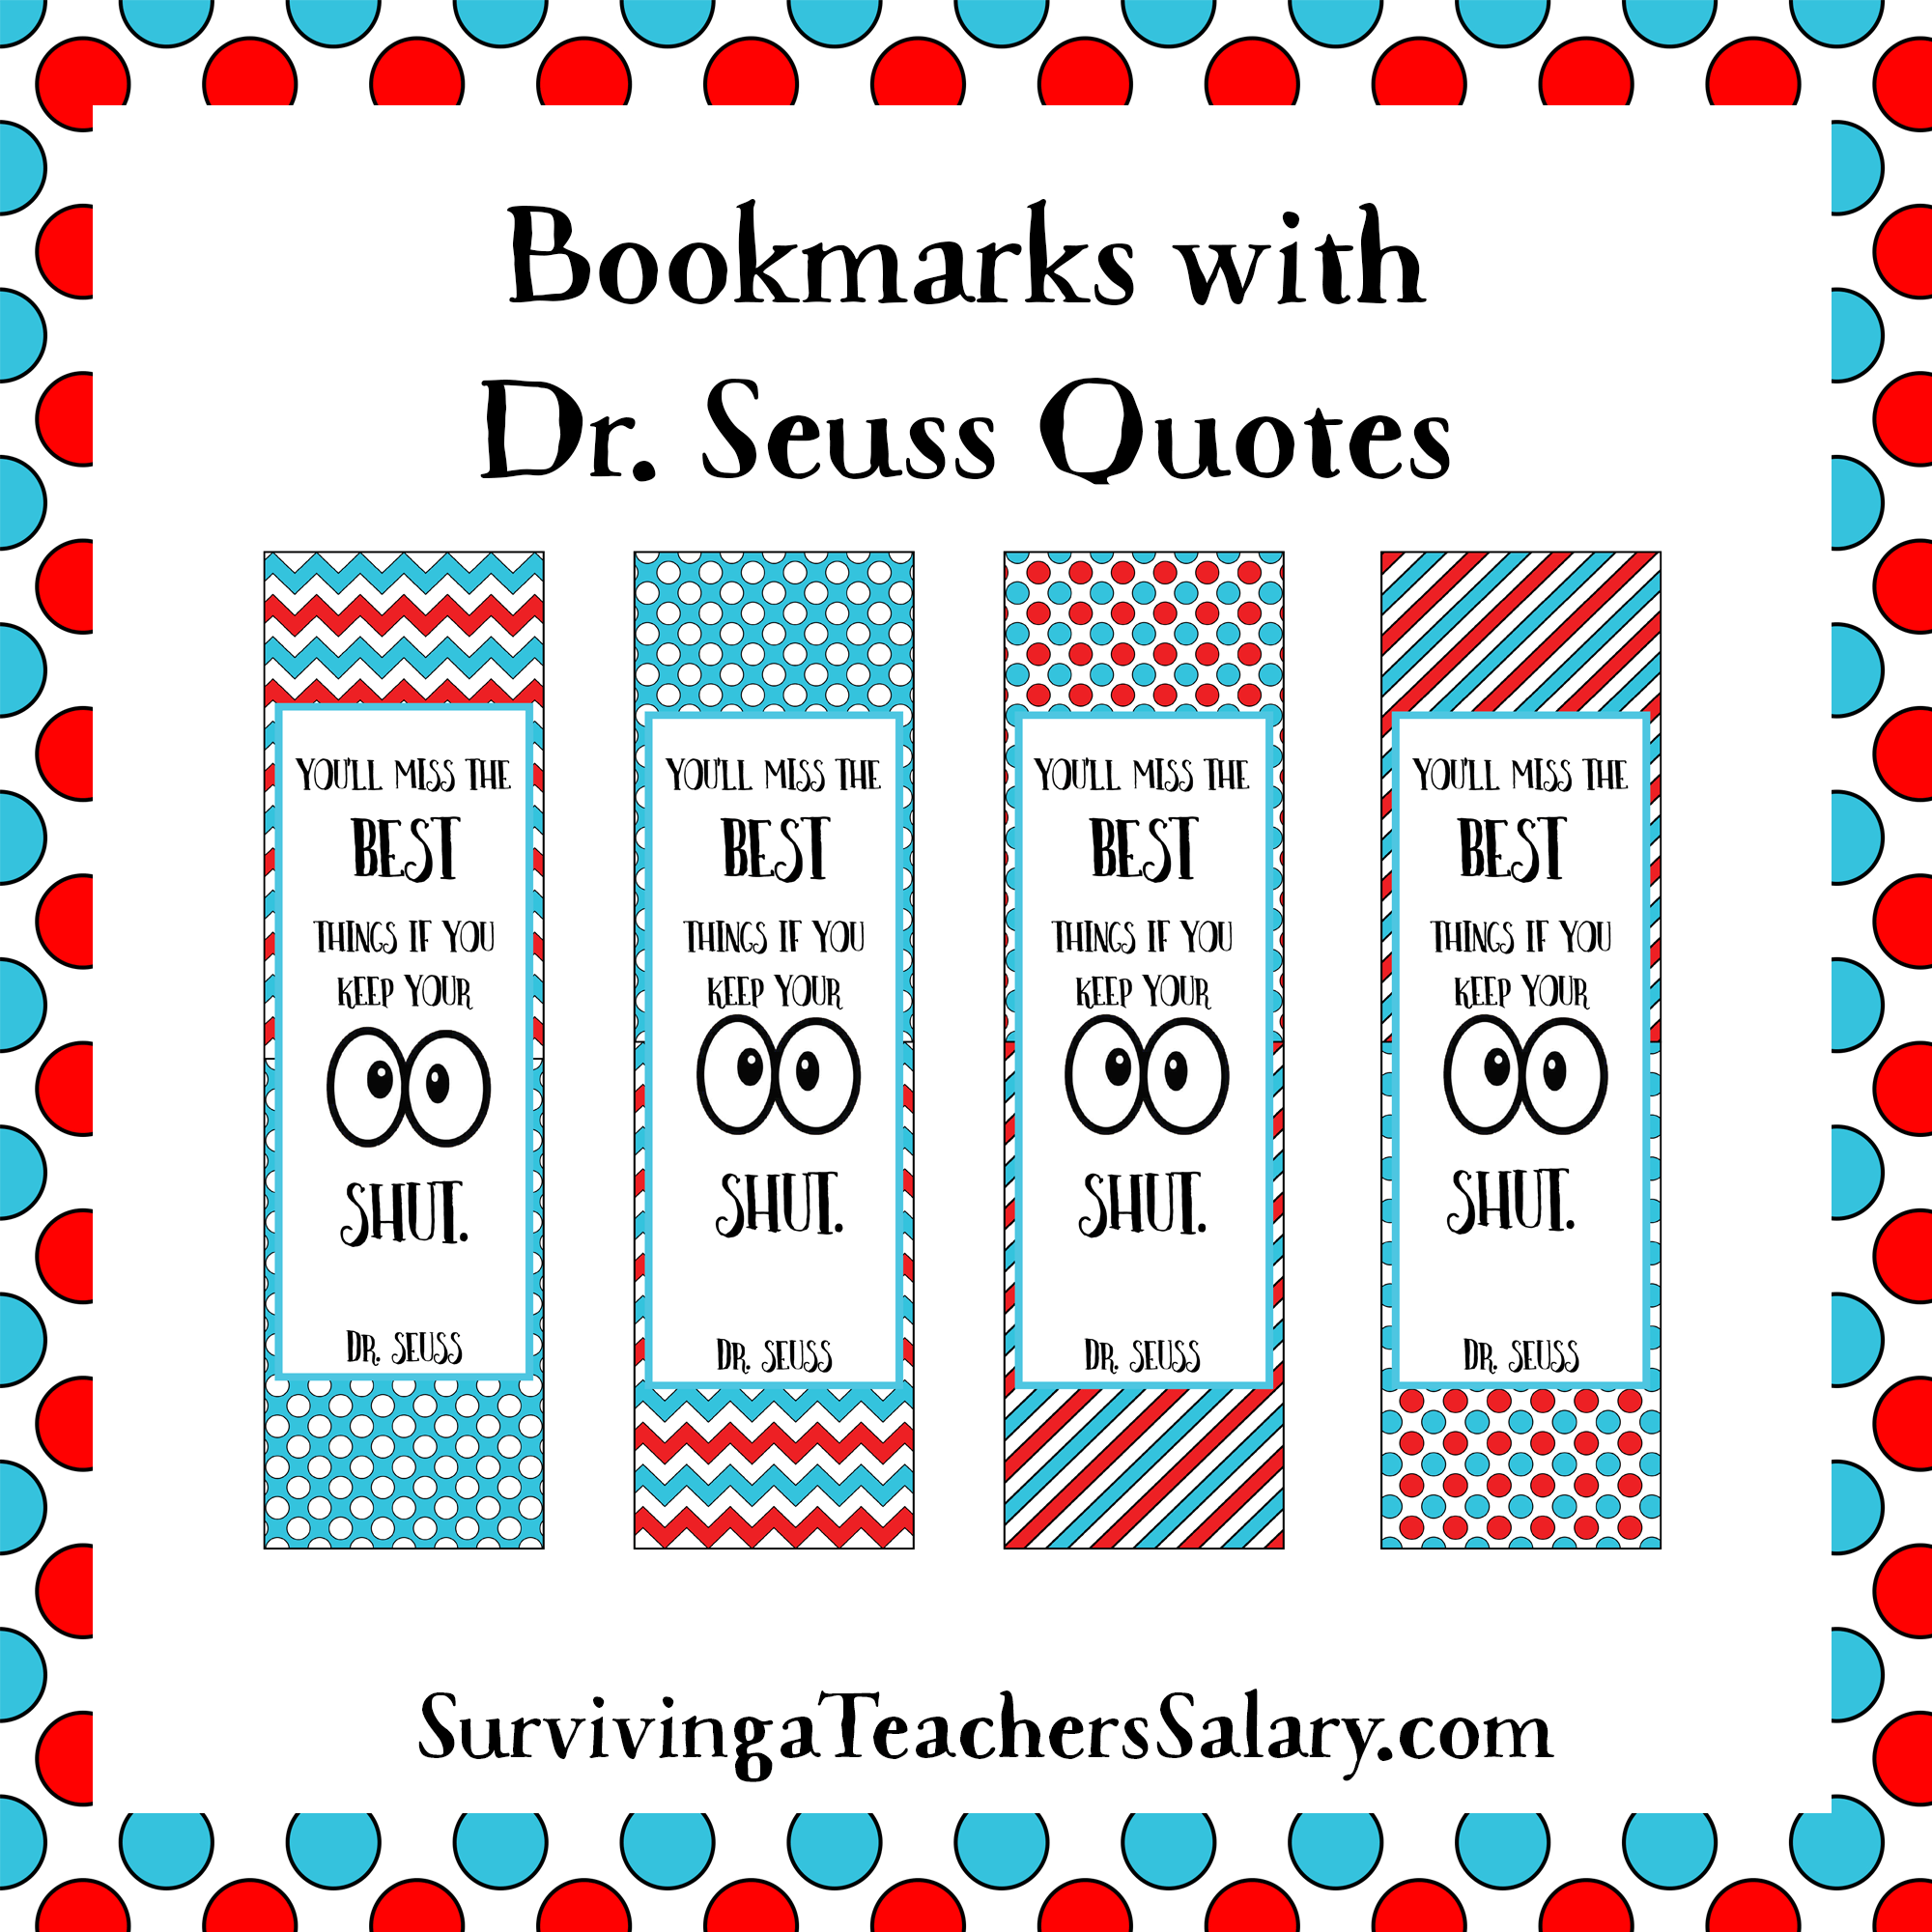 Printables archives page 2 of 5 surviving a teachers for Book marker template